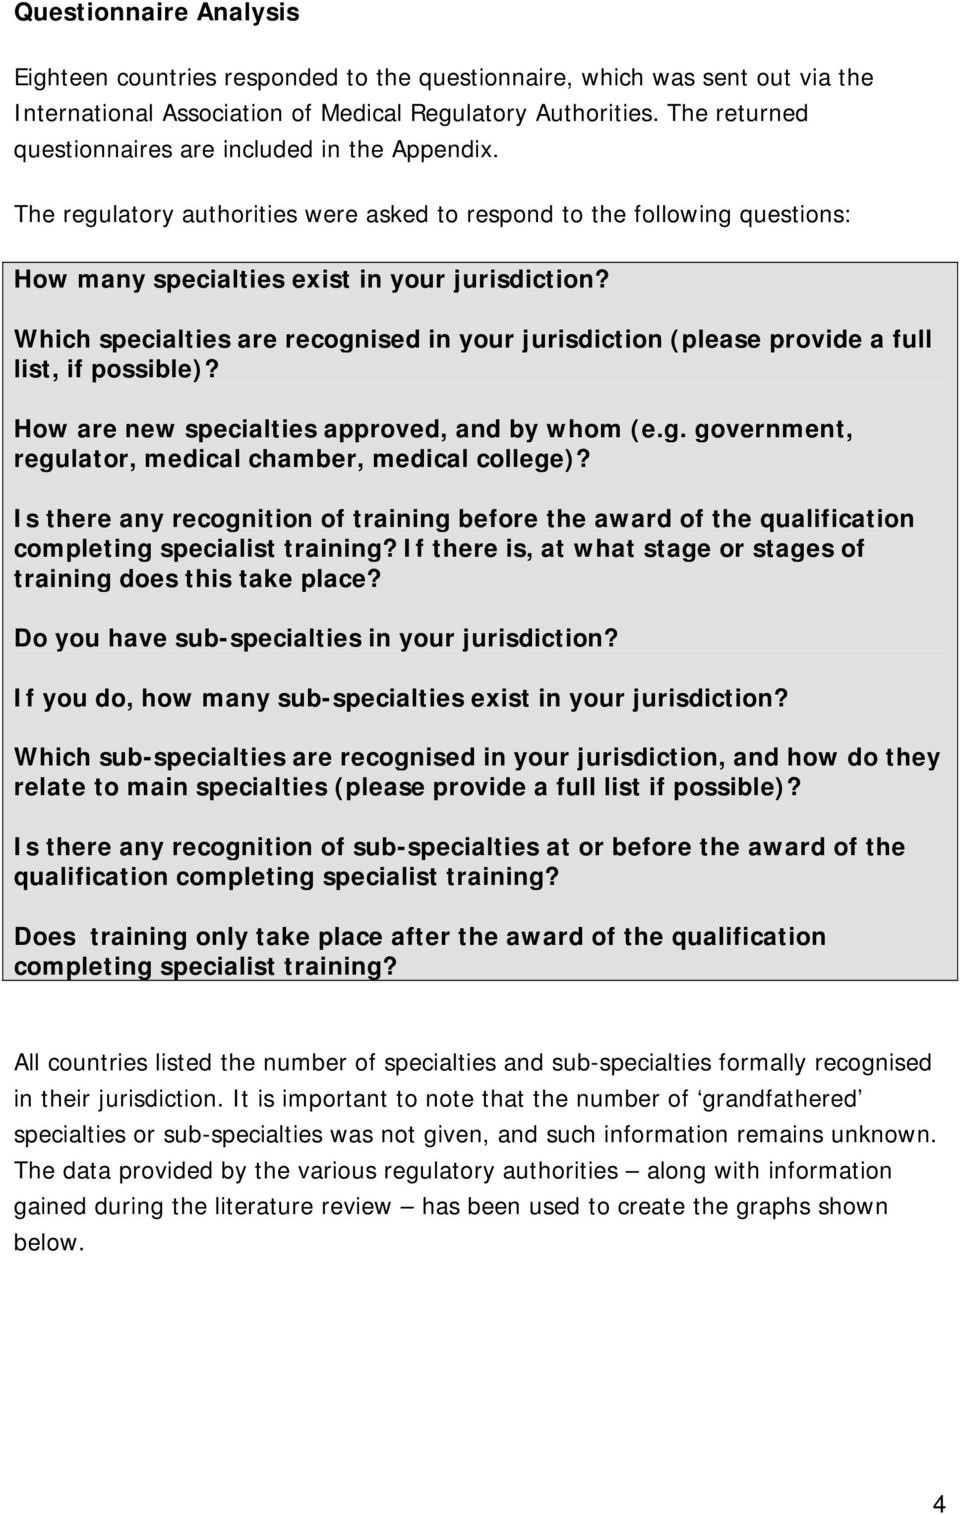 Which specialties are recognised in your jurisdiction (please provide a full list, if possible)? How are new specialties approved, and by whom (e.g. government, regulator, medical chamber, medical college)?